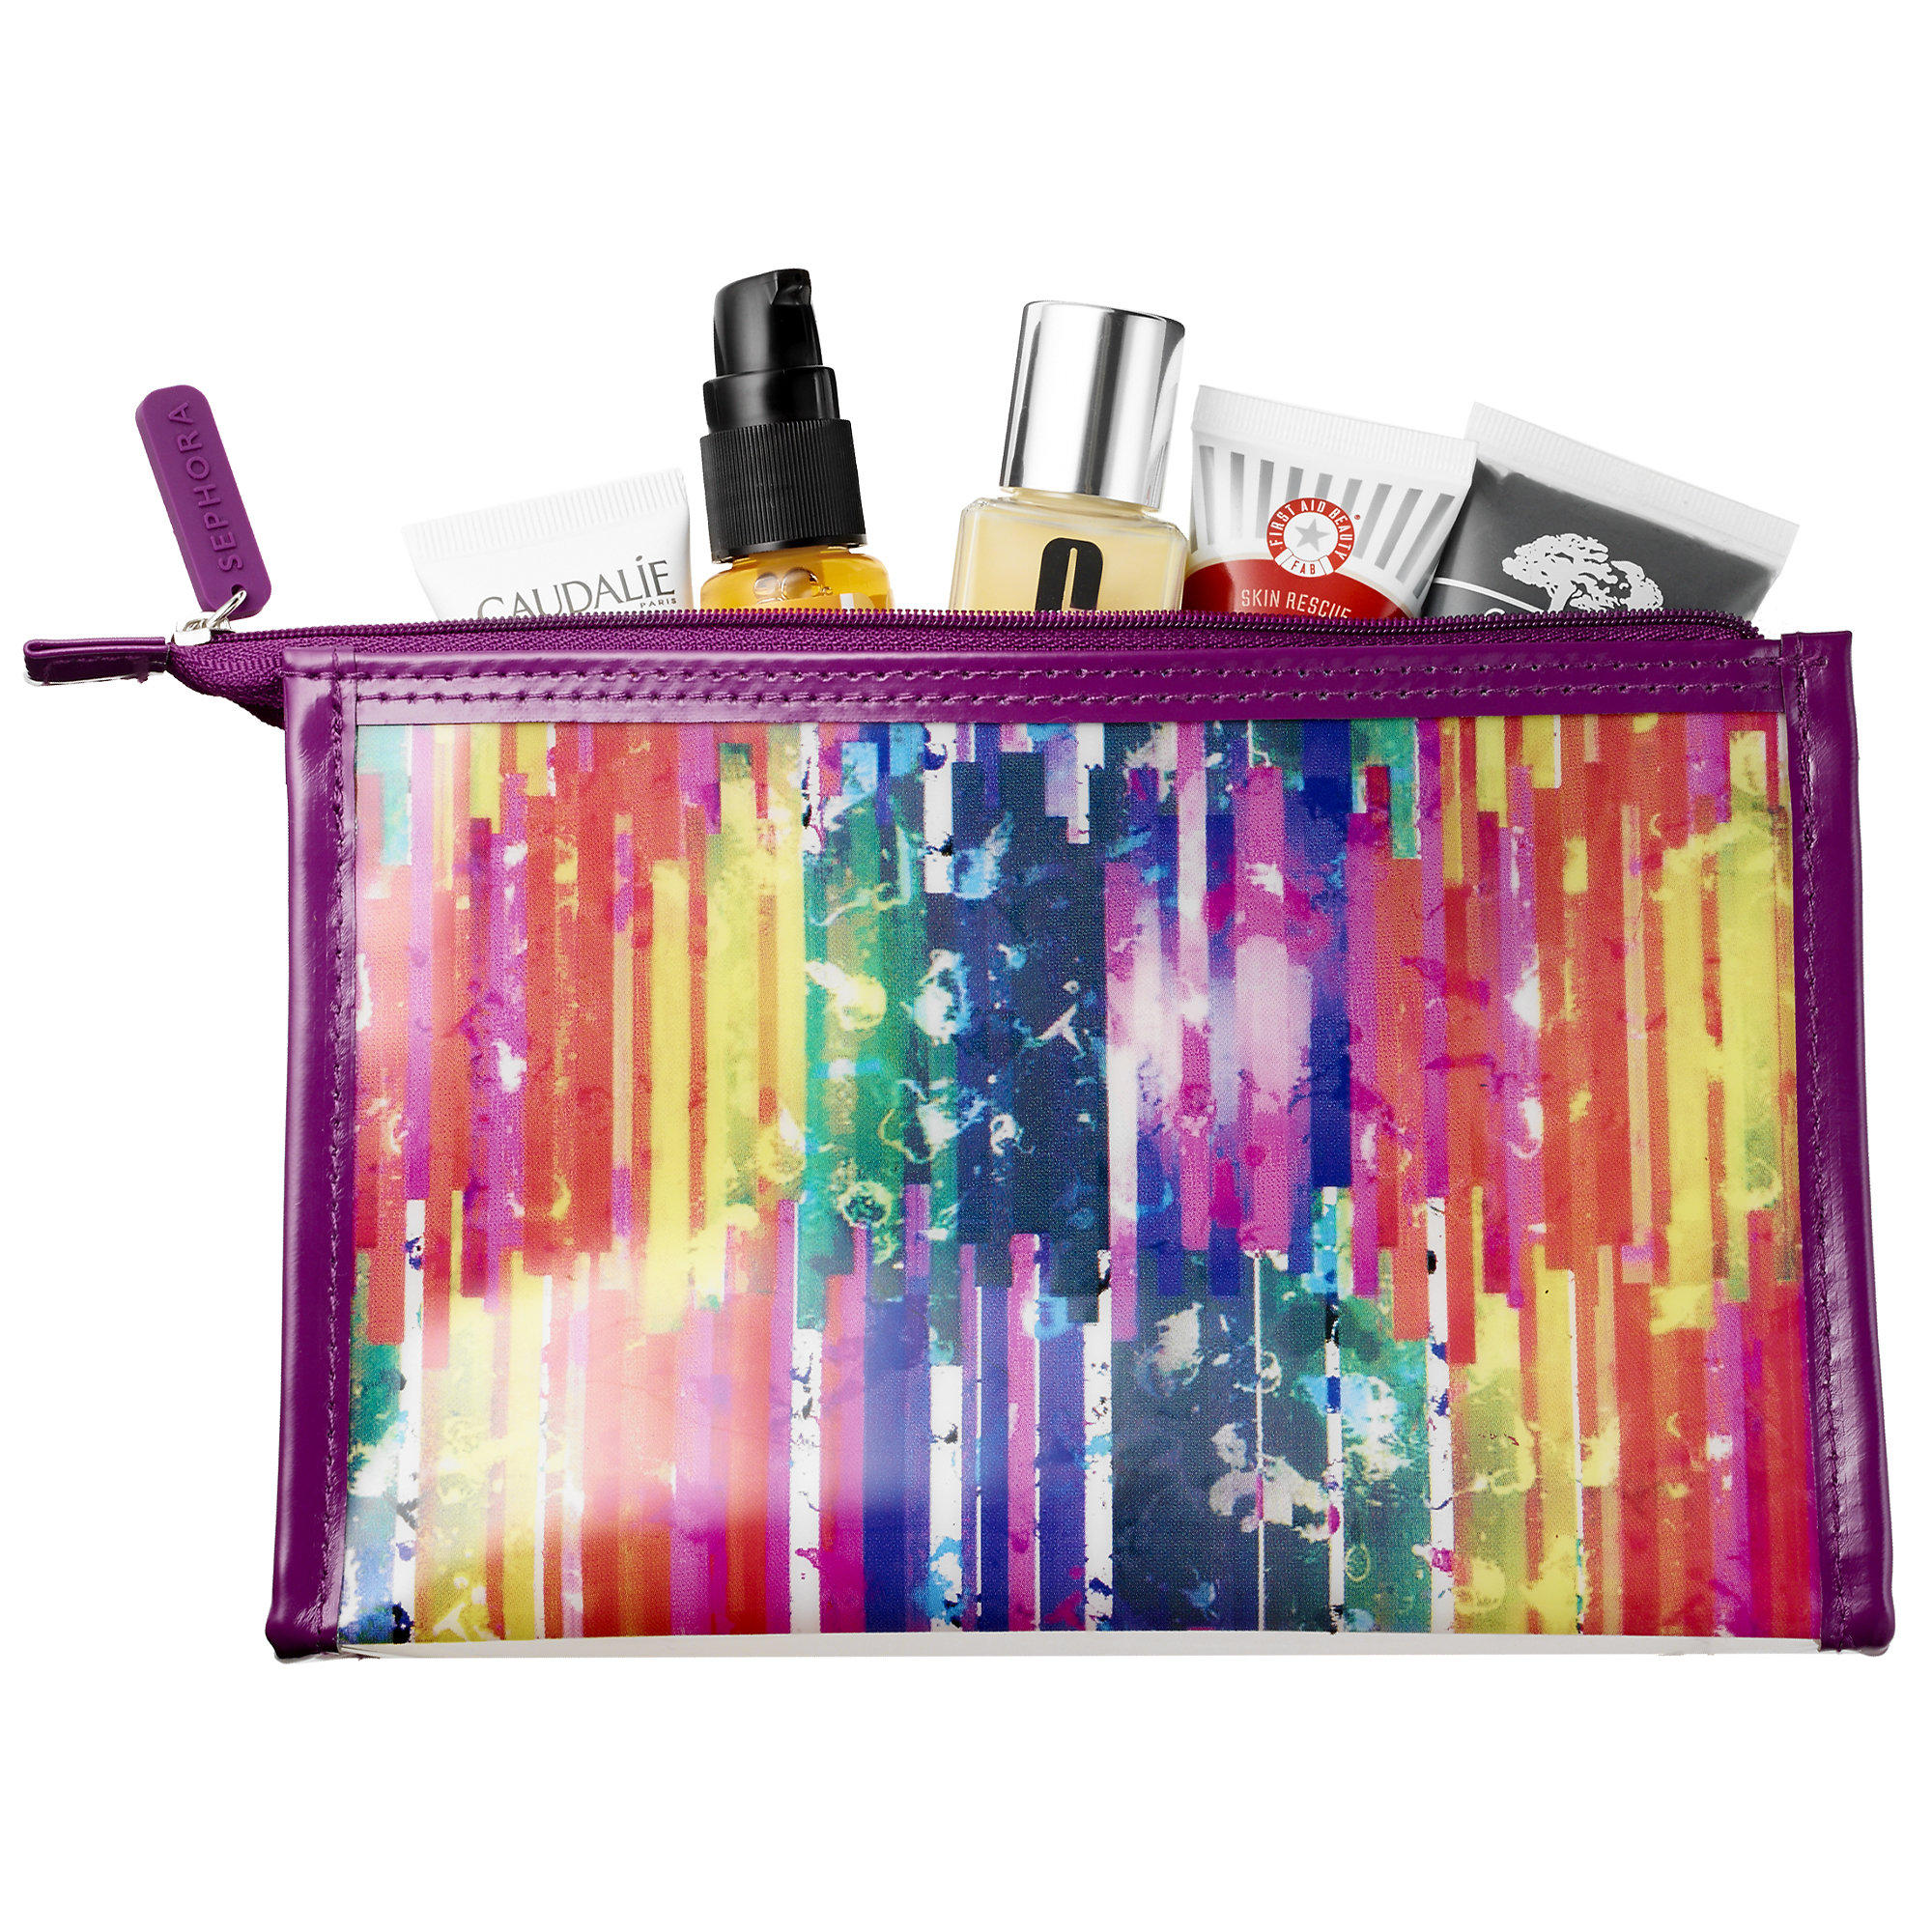 New ReleaseSephora launched New Customized Skincare Favorites Bag